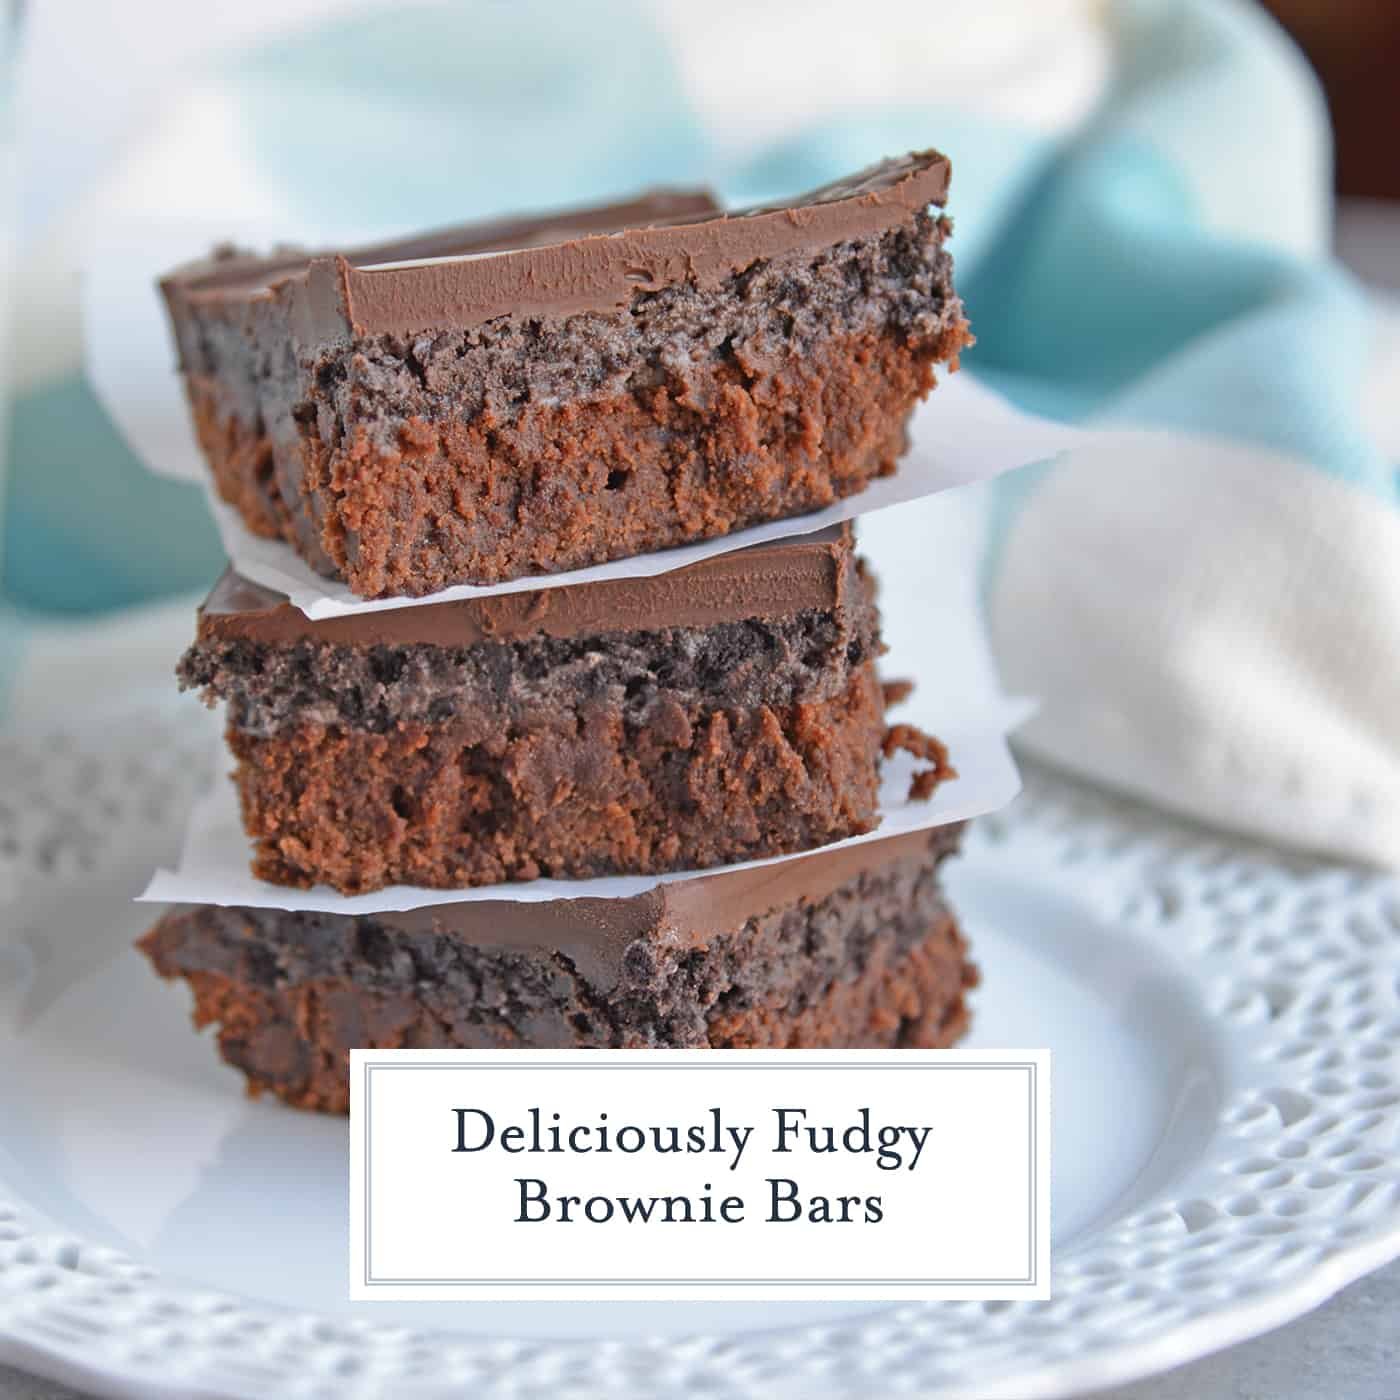 Fudgy Brownie Bars are an easy dessert recipe with layers of brownie, cookie and chocolate ganache, the ultimate chocolate lovers dream! #fudgybrownies #cookiebrownies www.savoryexperiments.com